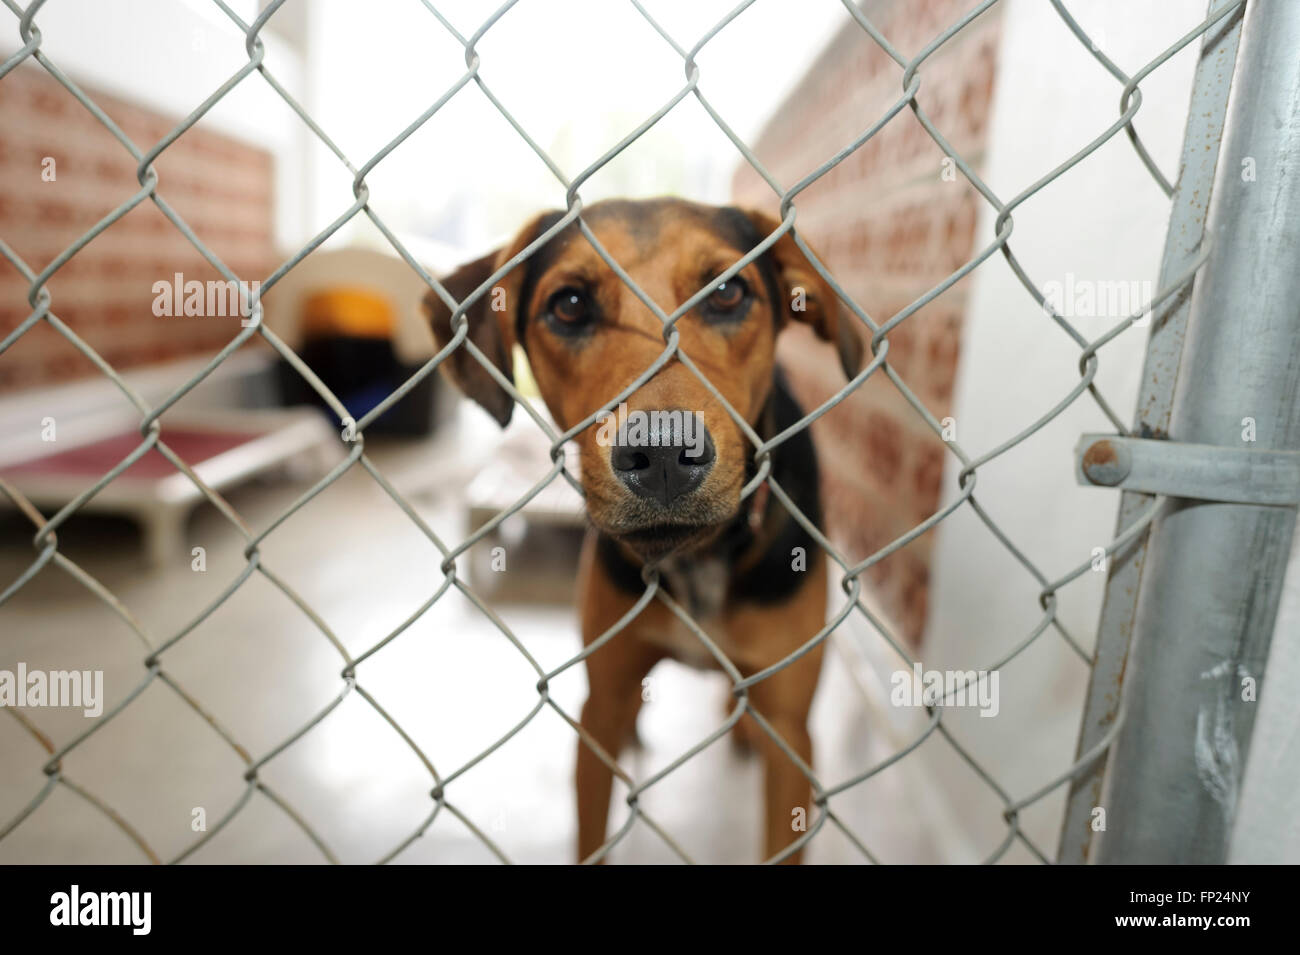 Shelter dog is is a beautiful dog in an animal shelter looking through the fence wondering if anyone is going to - Stock Image